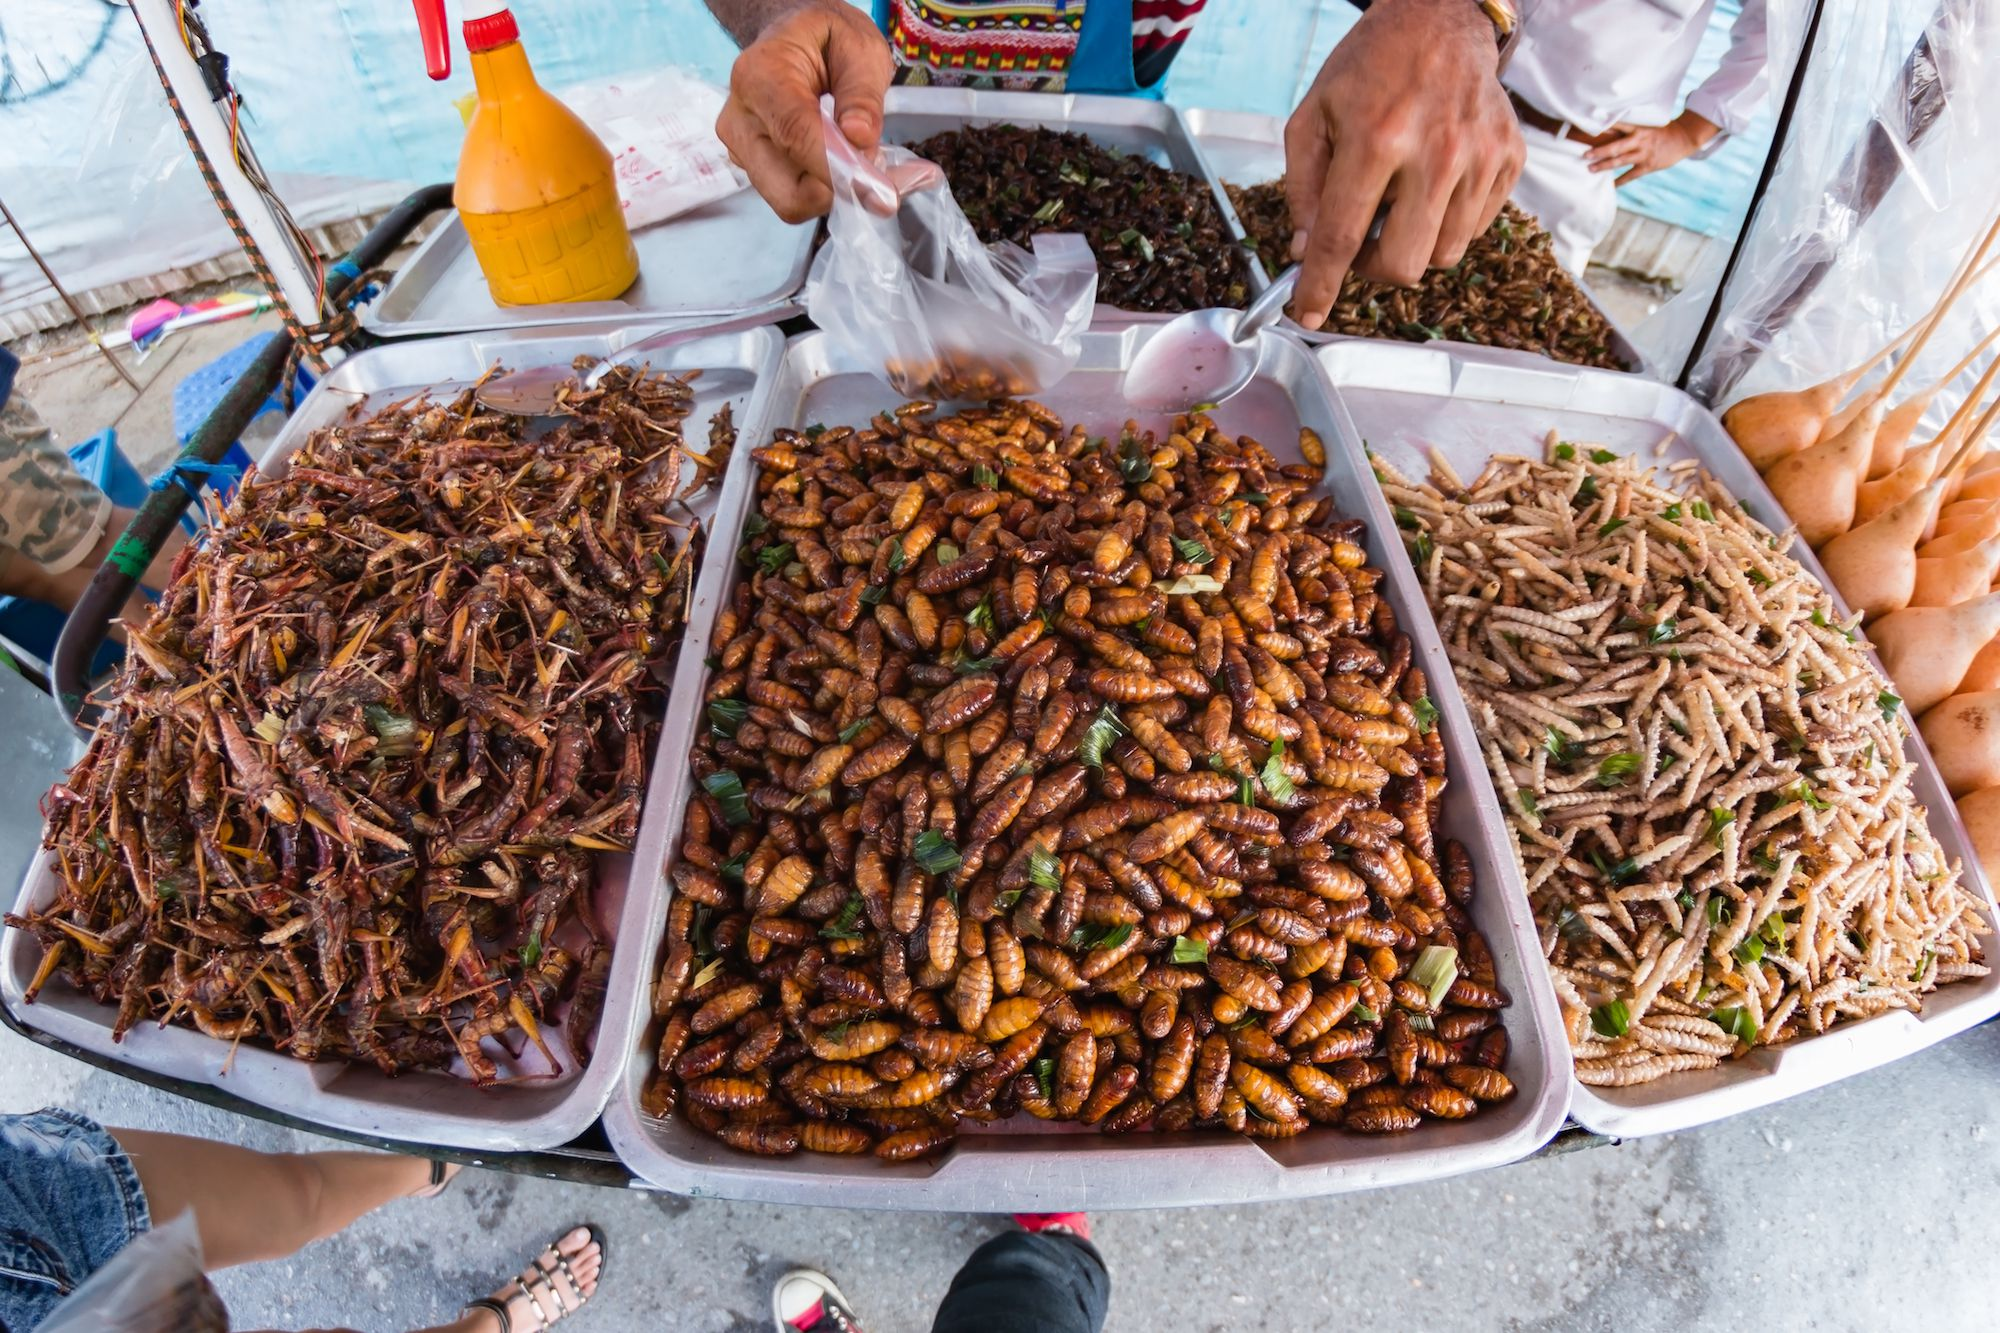 6 Types Of Insects You Can Eat